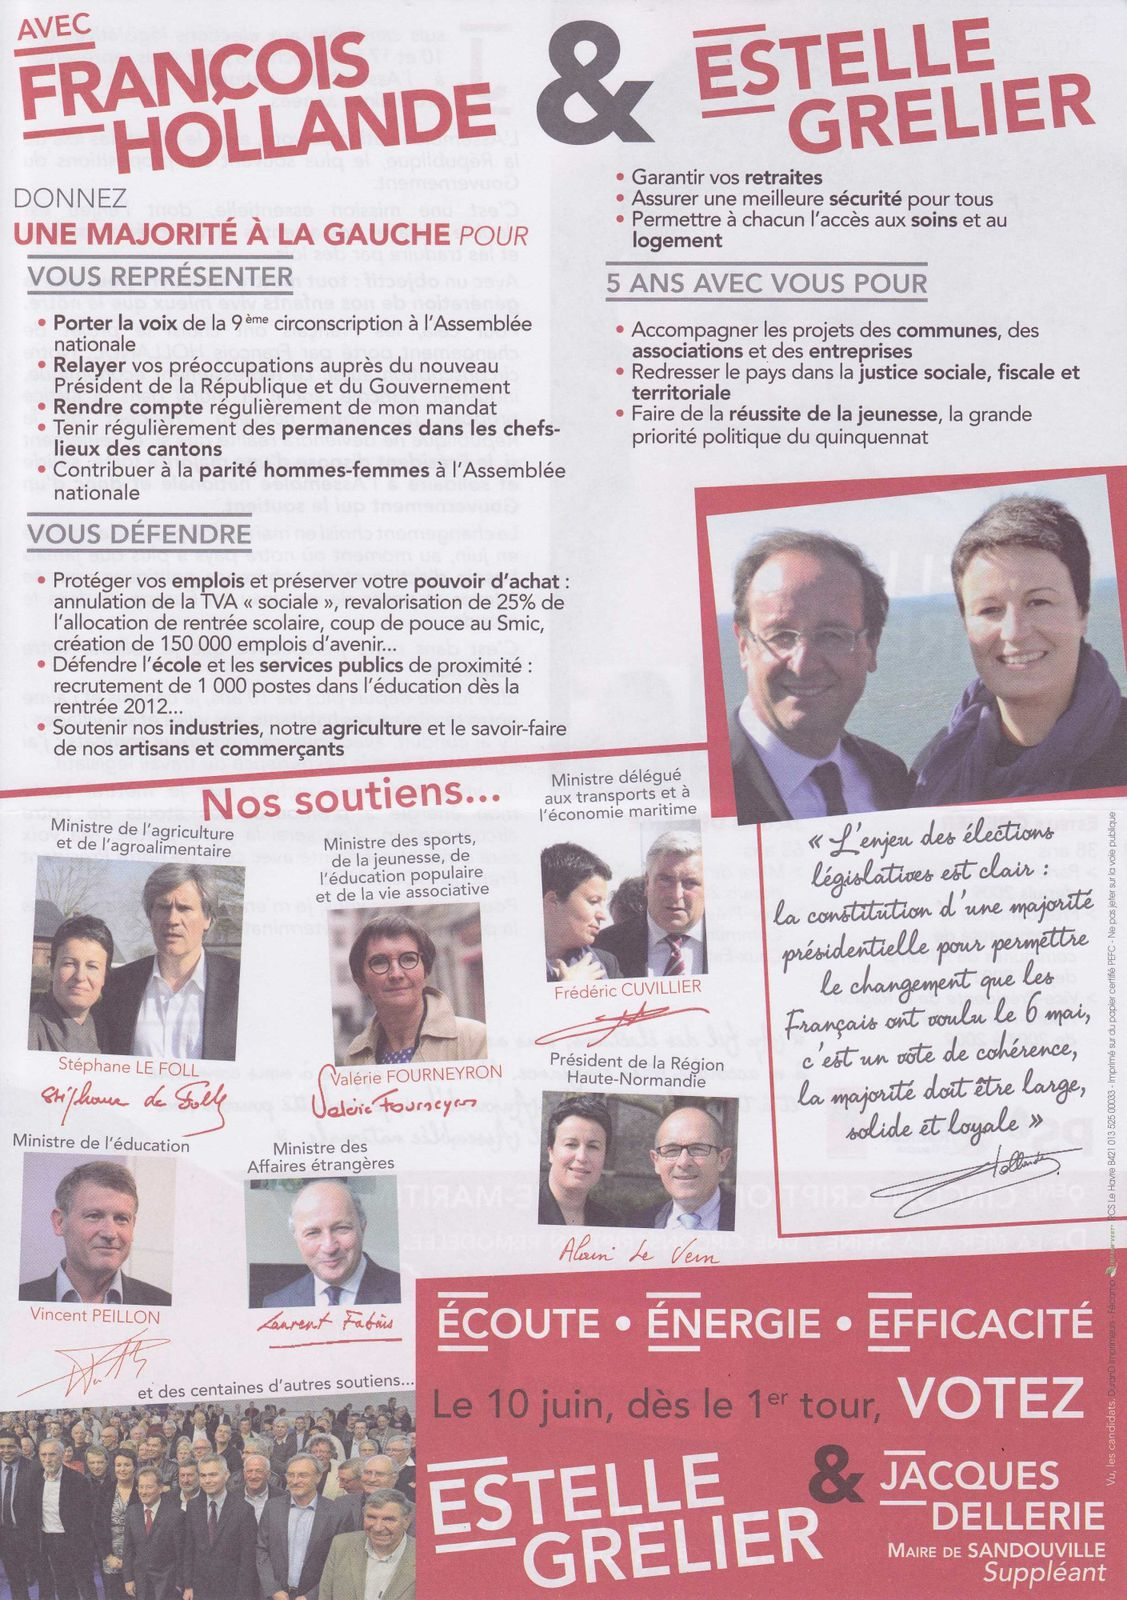 8-2012-legislative-9eme-Circonscription-Seine-maritime-PS.jpg